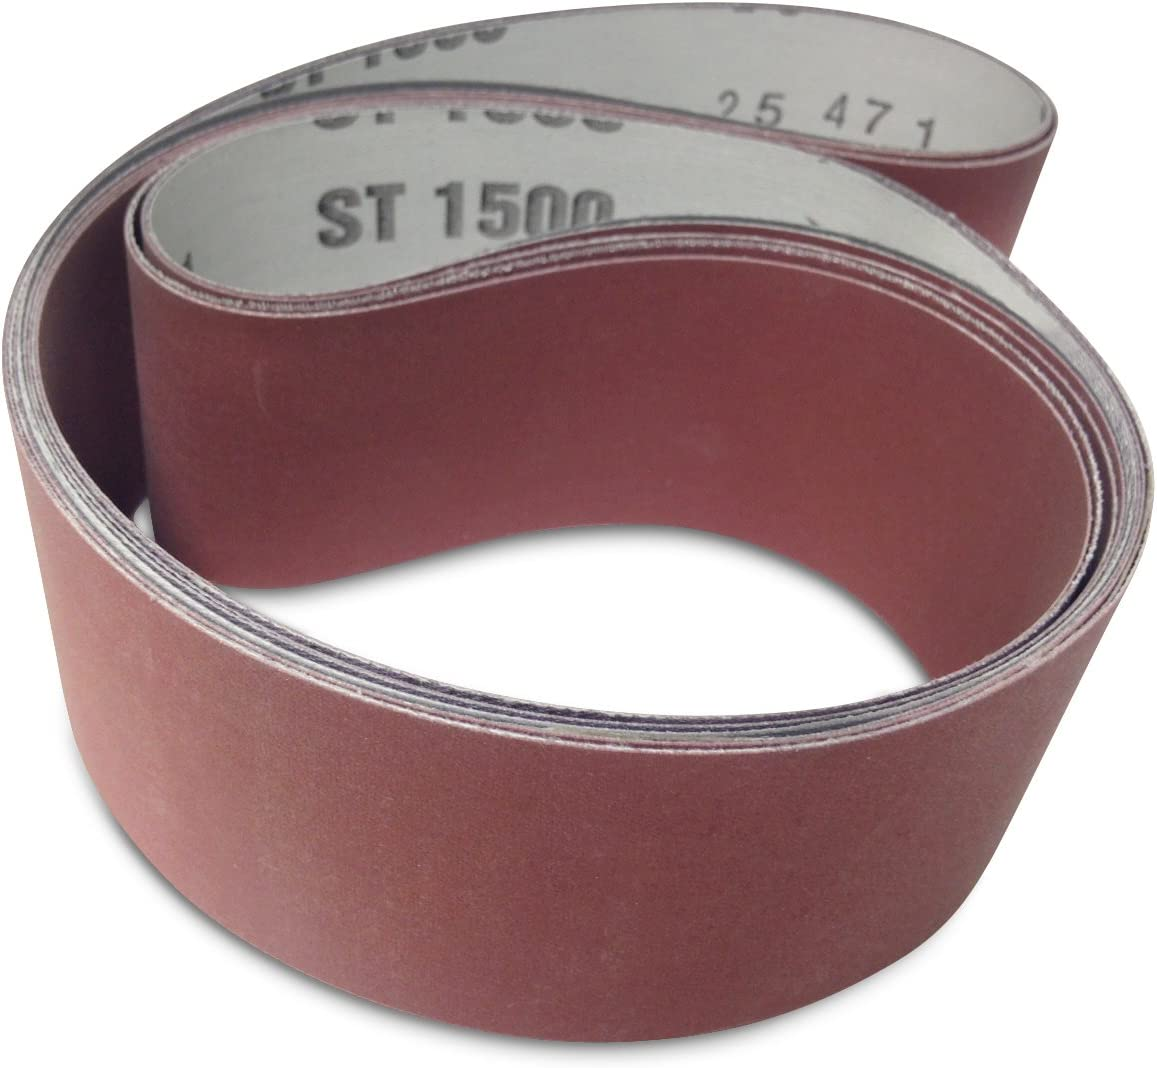 Red Label Abrasives 2 X Challenge the lowest price 42 Atlanta Mall Sharpening - Knife Belts Sanding Inch